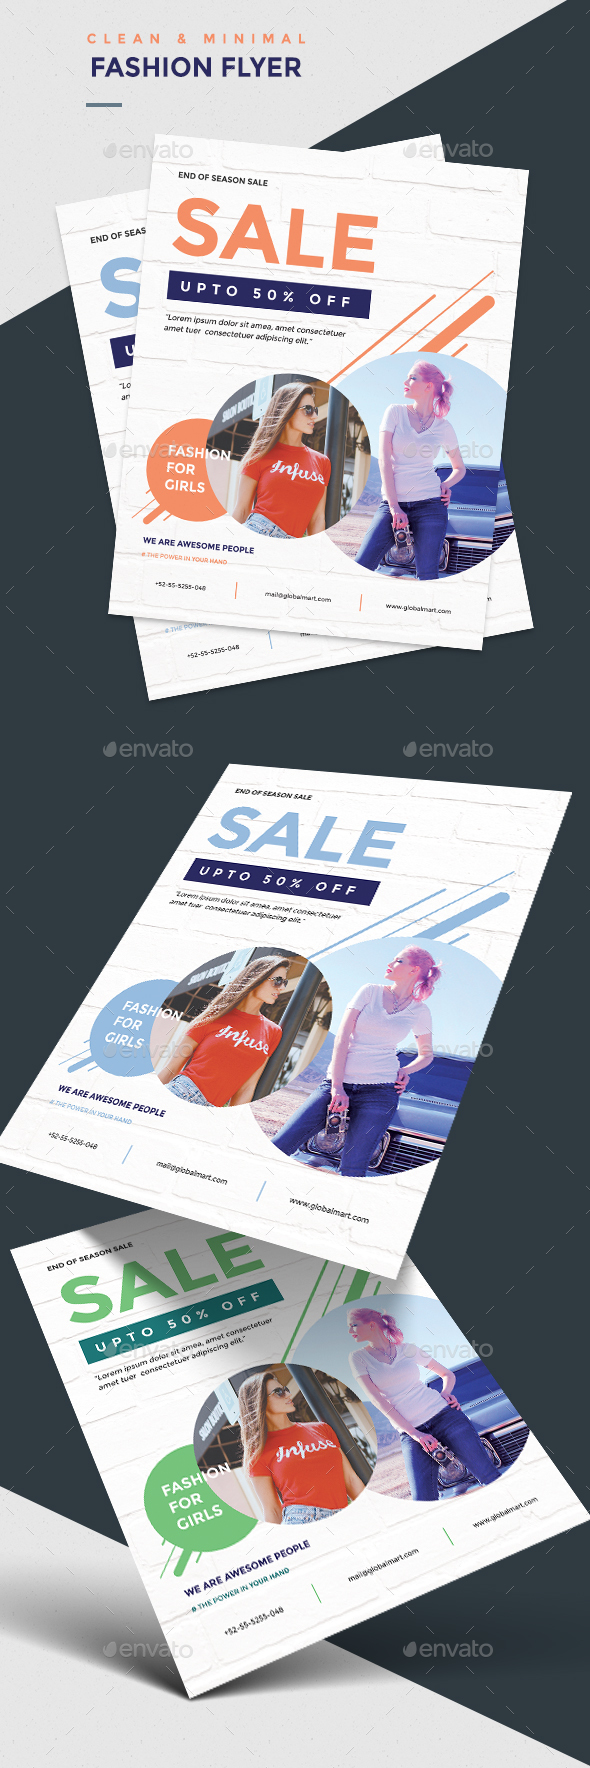 Minimal Fashion Sale Flyer - Corporate Flyers